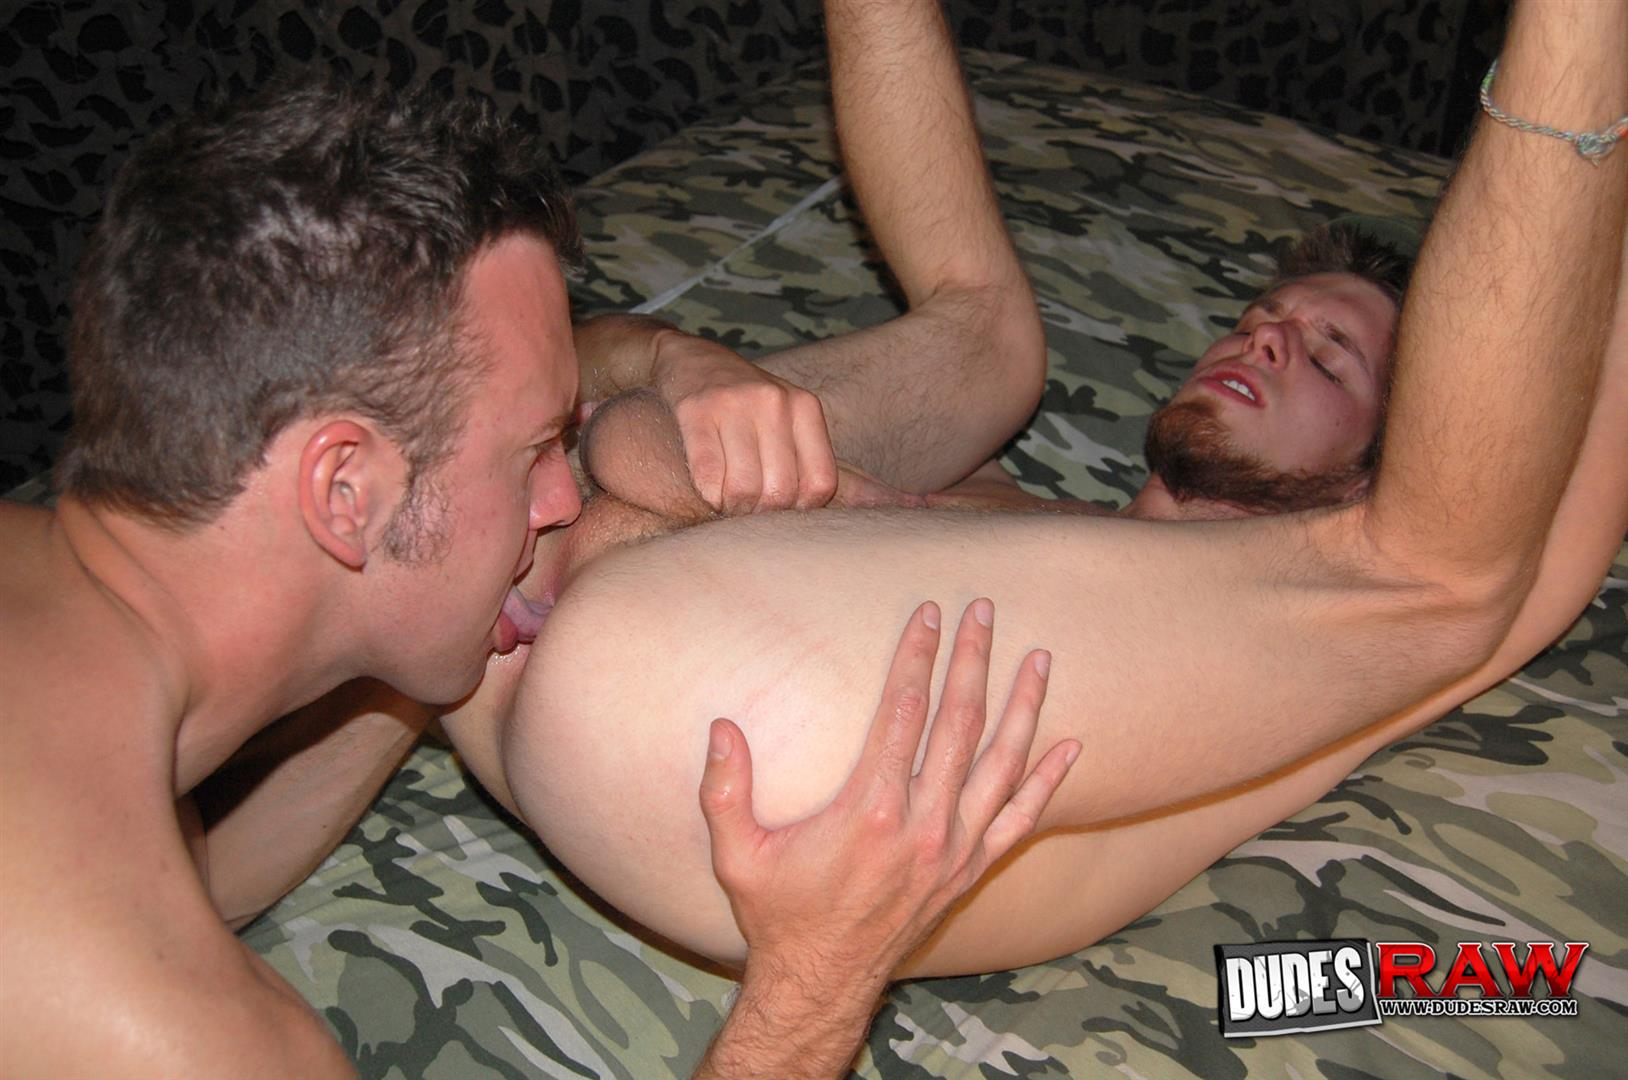 Dudes-Raw-Jacques-Satori-and-Zeke-Stardust-Army-Guys-Barebacking-Amateur-Gay-Porn-16 Army Guys Discover Gay Sex and Bareback Fuck Each Other